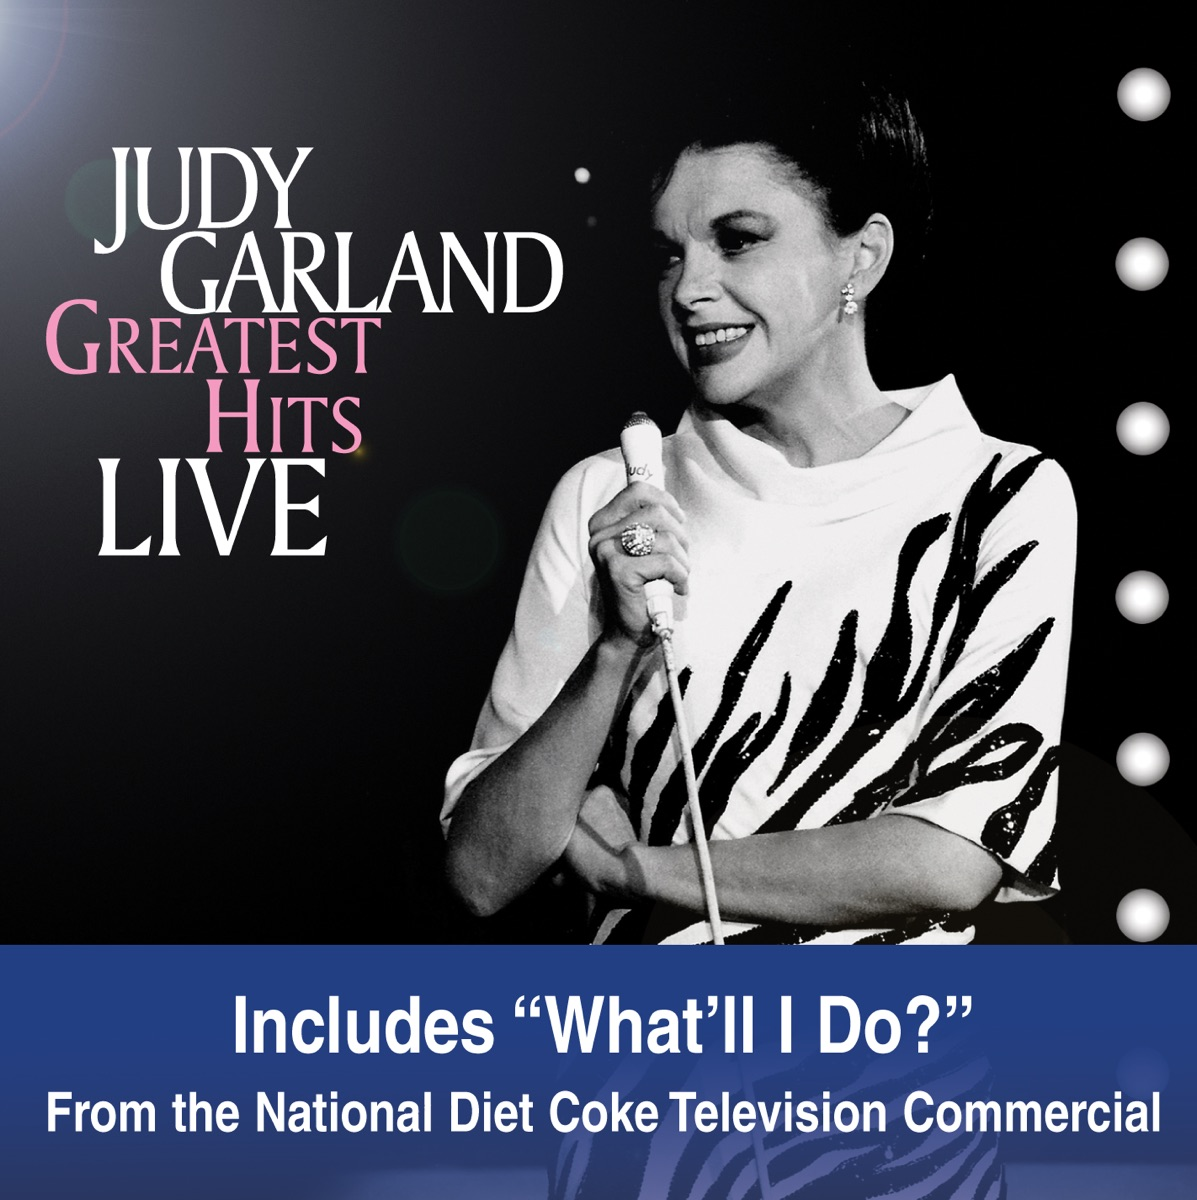 Greatest Hits Live Album Cover by Judy Garland